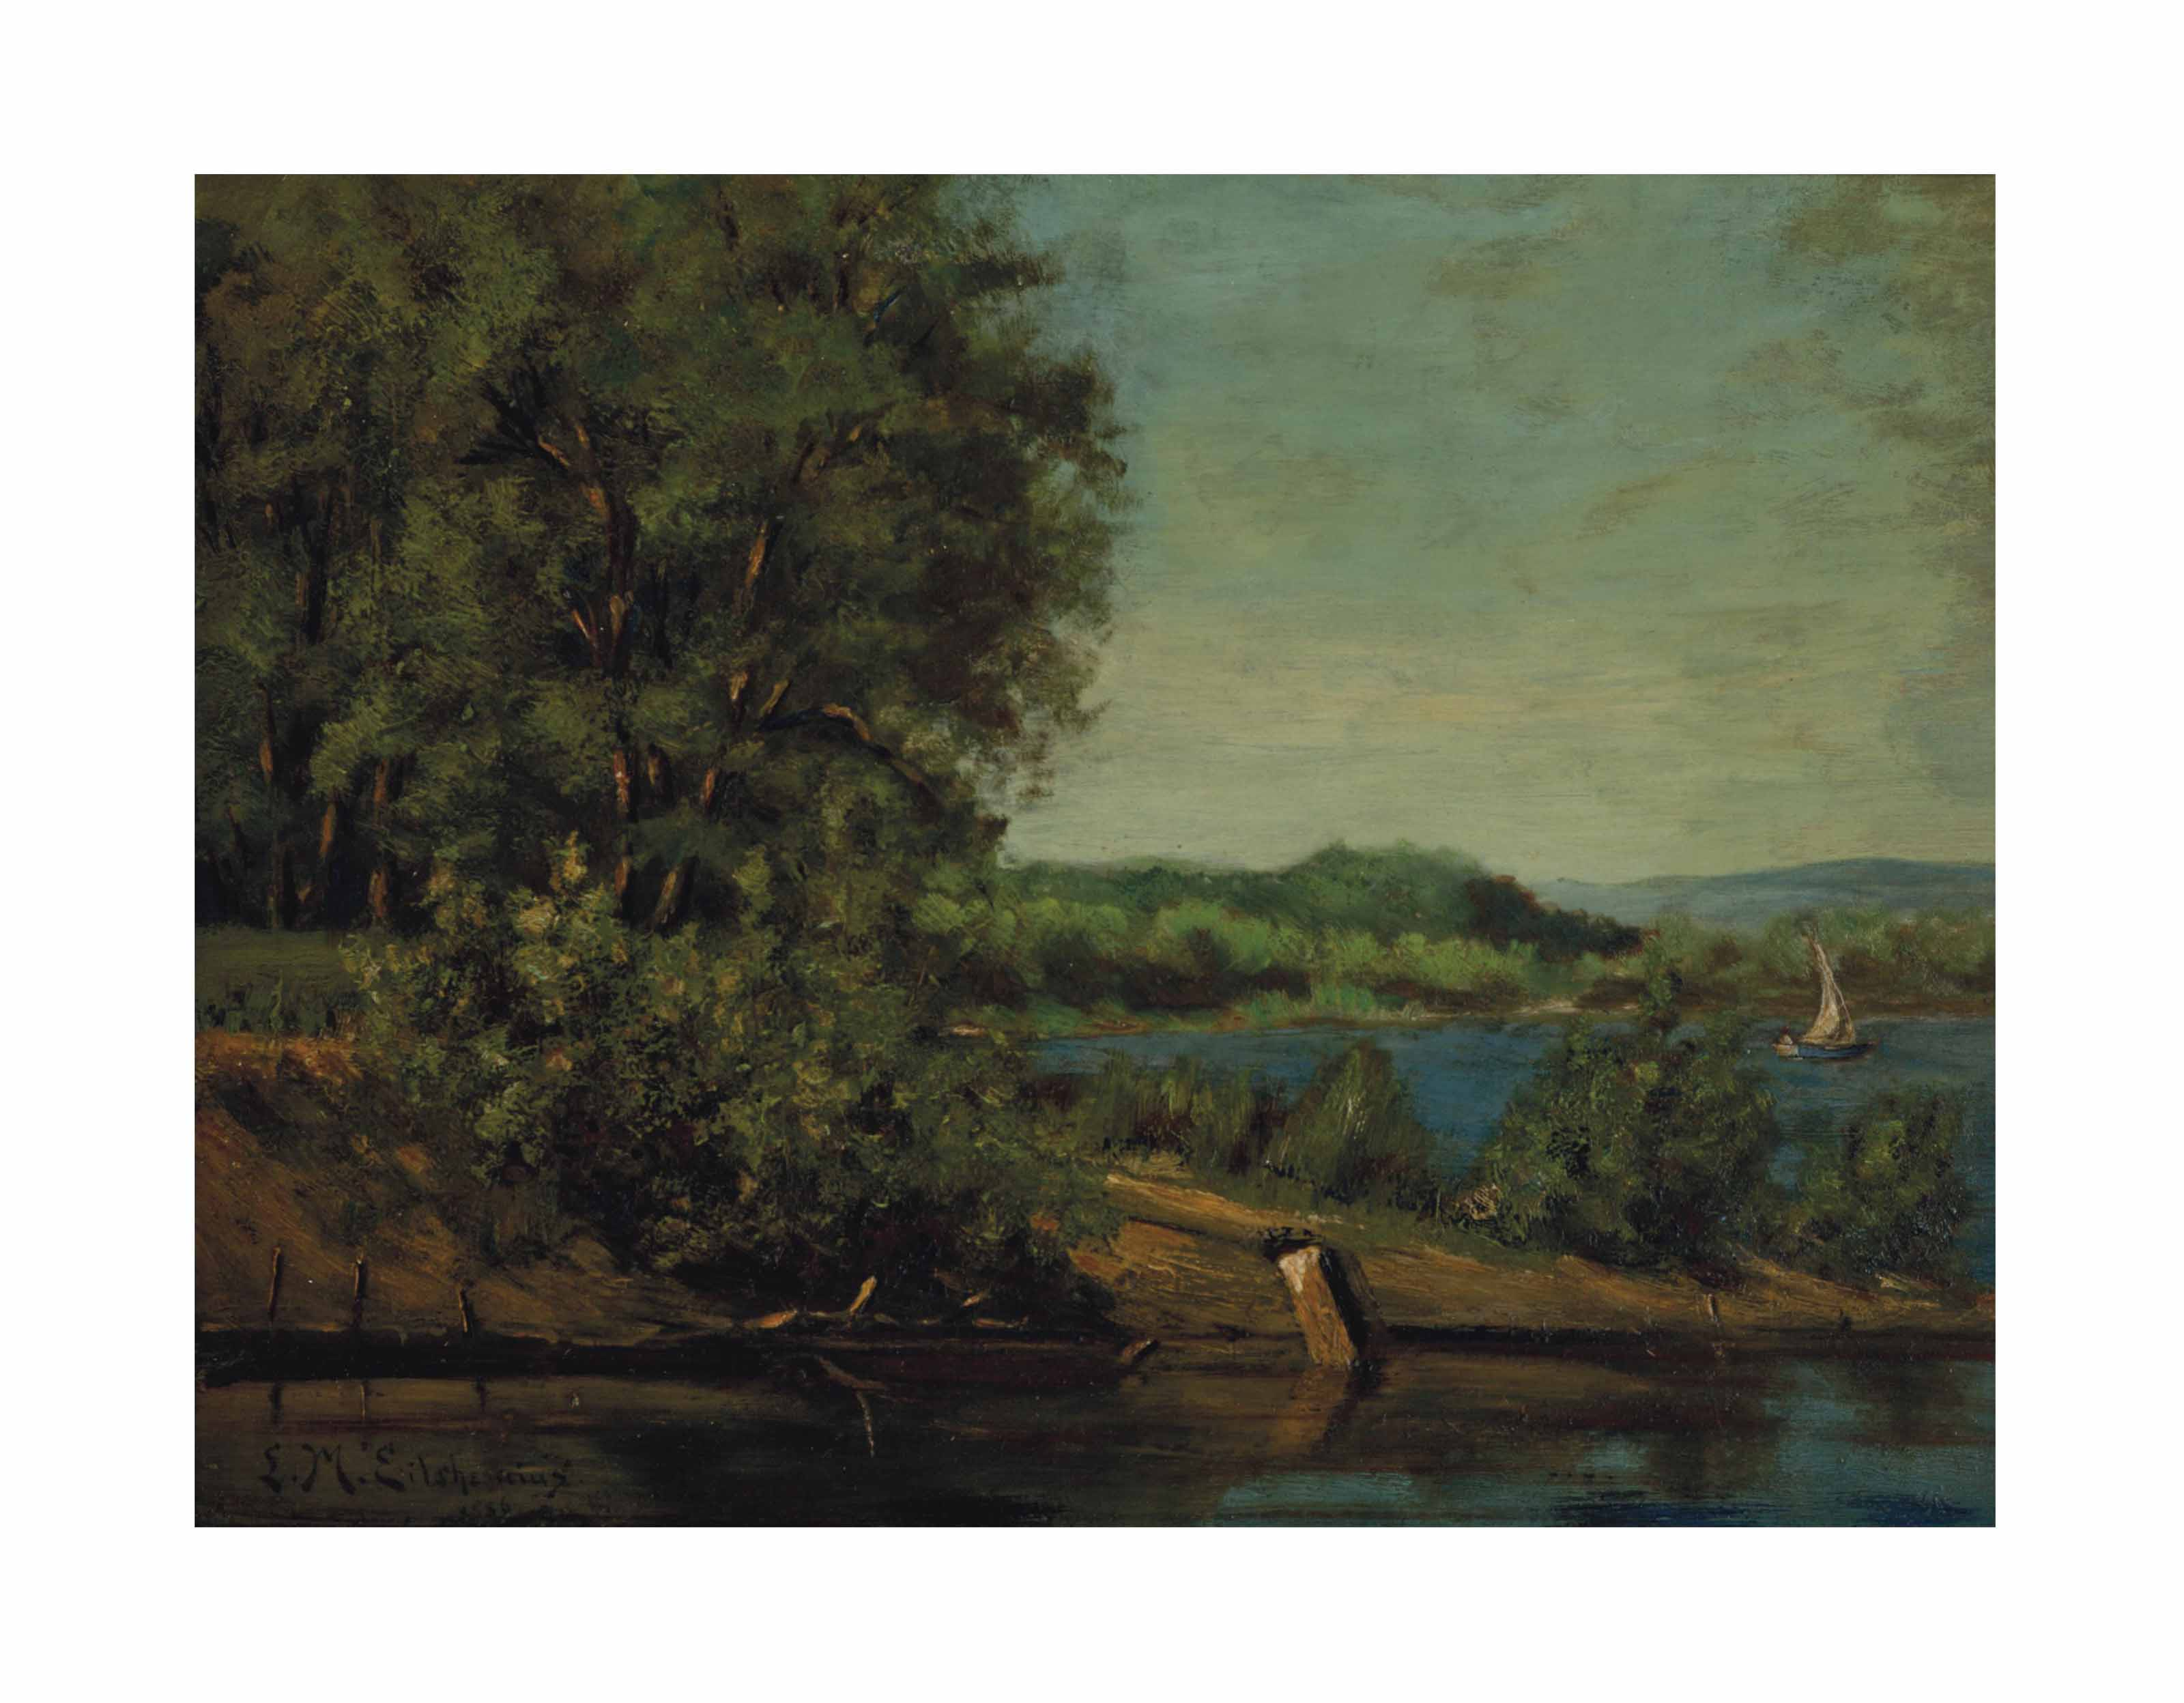 A Lake Scene with a Boat and a House in the Distance